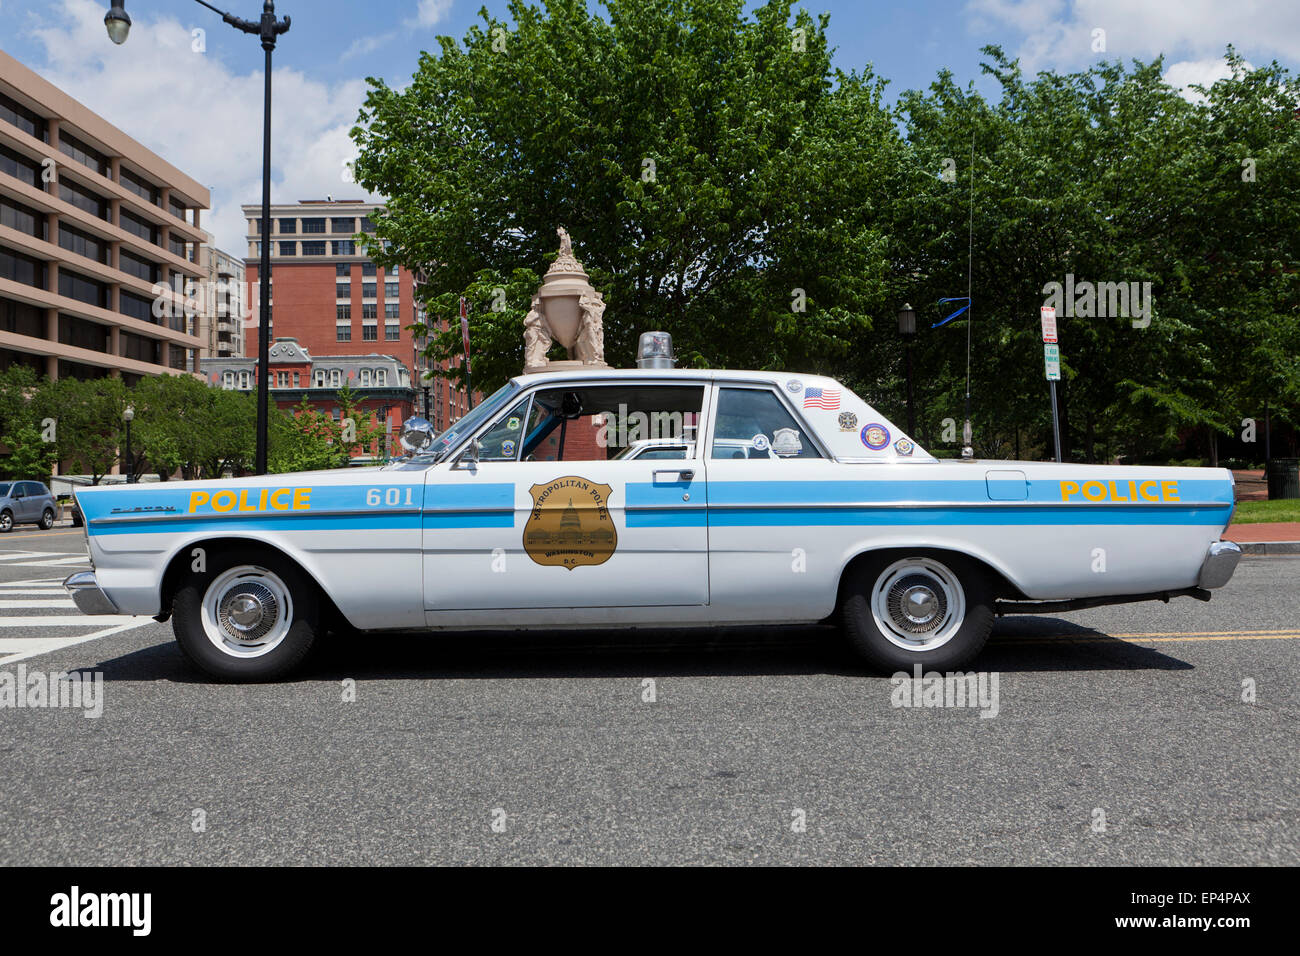 Police Vehicle Upfitting: In-House or Outsource ...  |1970 Police Cars Florida